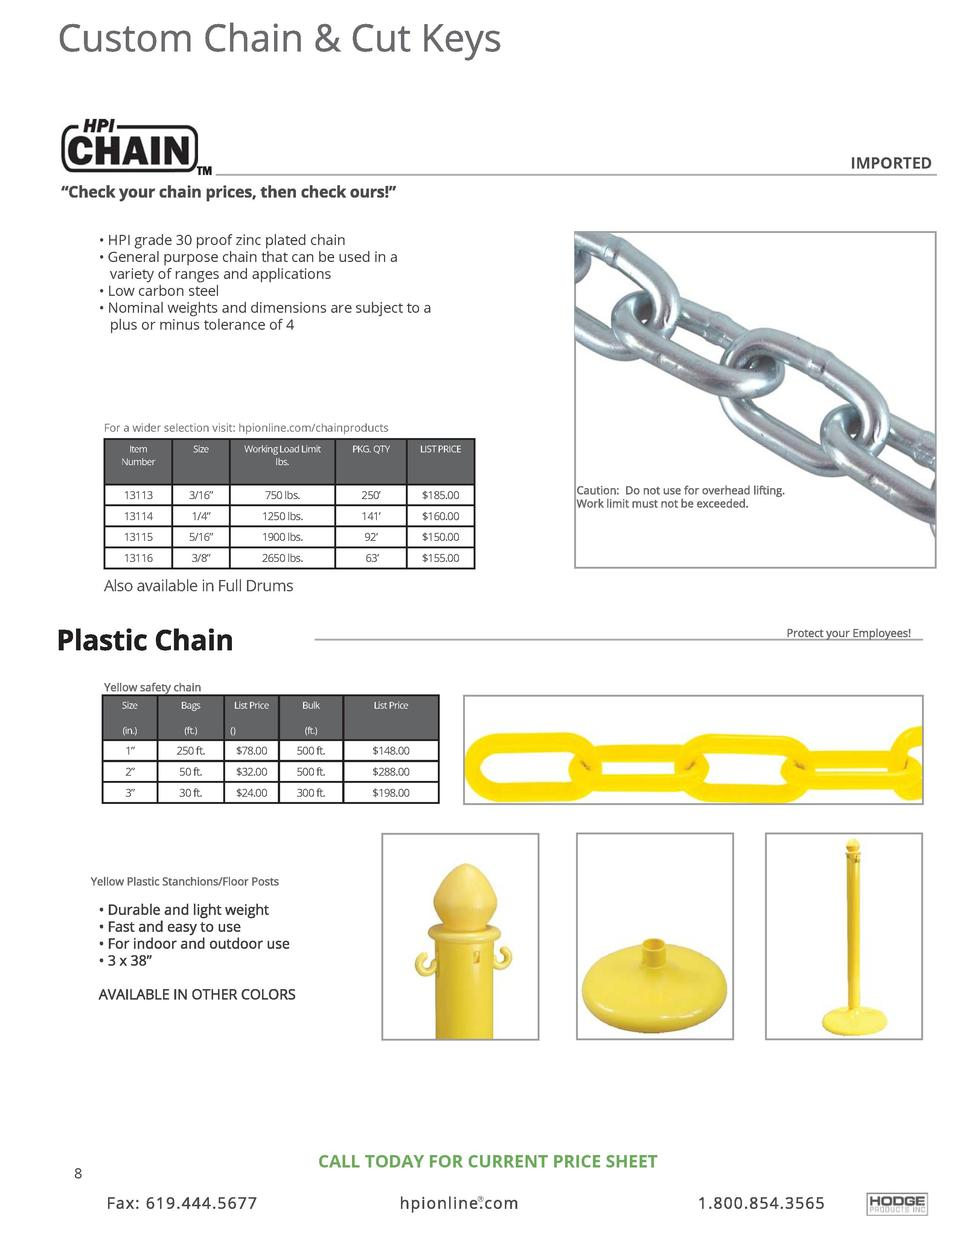 IMPORTED      HPI grade 30 proof zinc plated chain     General purpose chain that can be used in a variety of ranges and a...